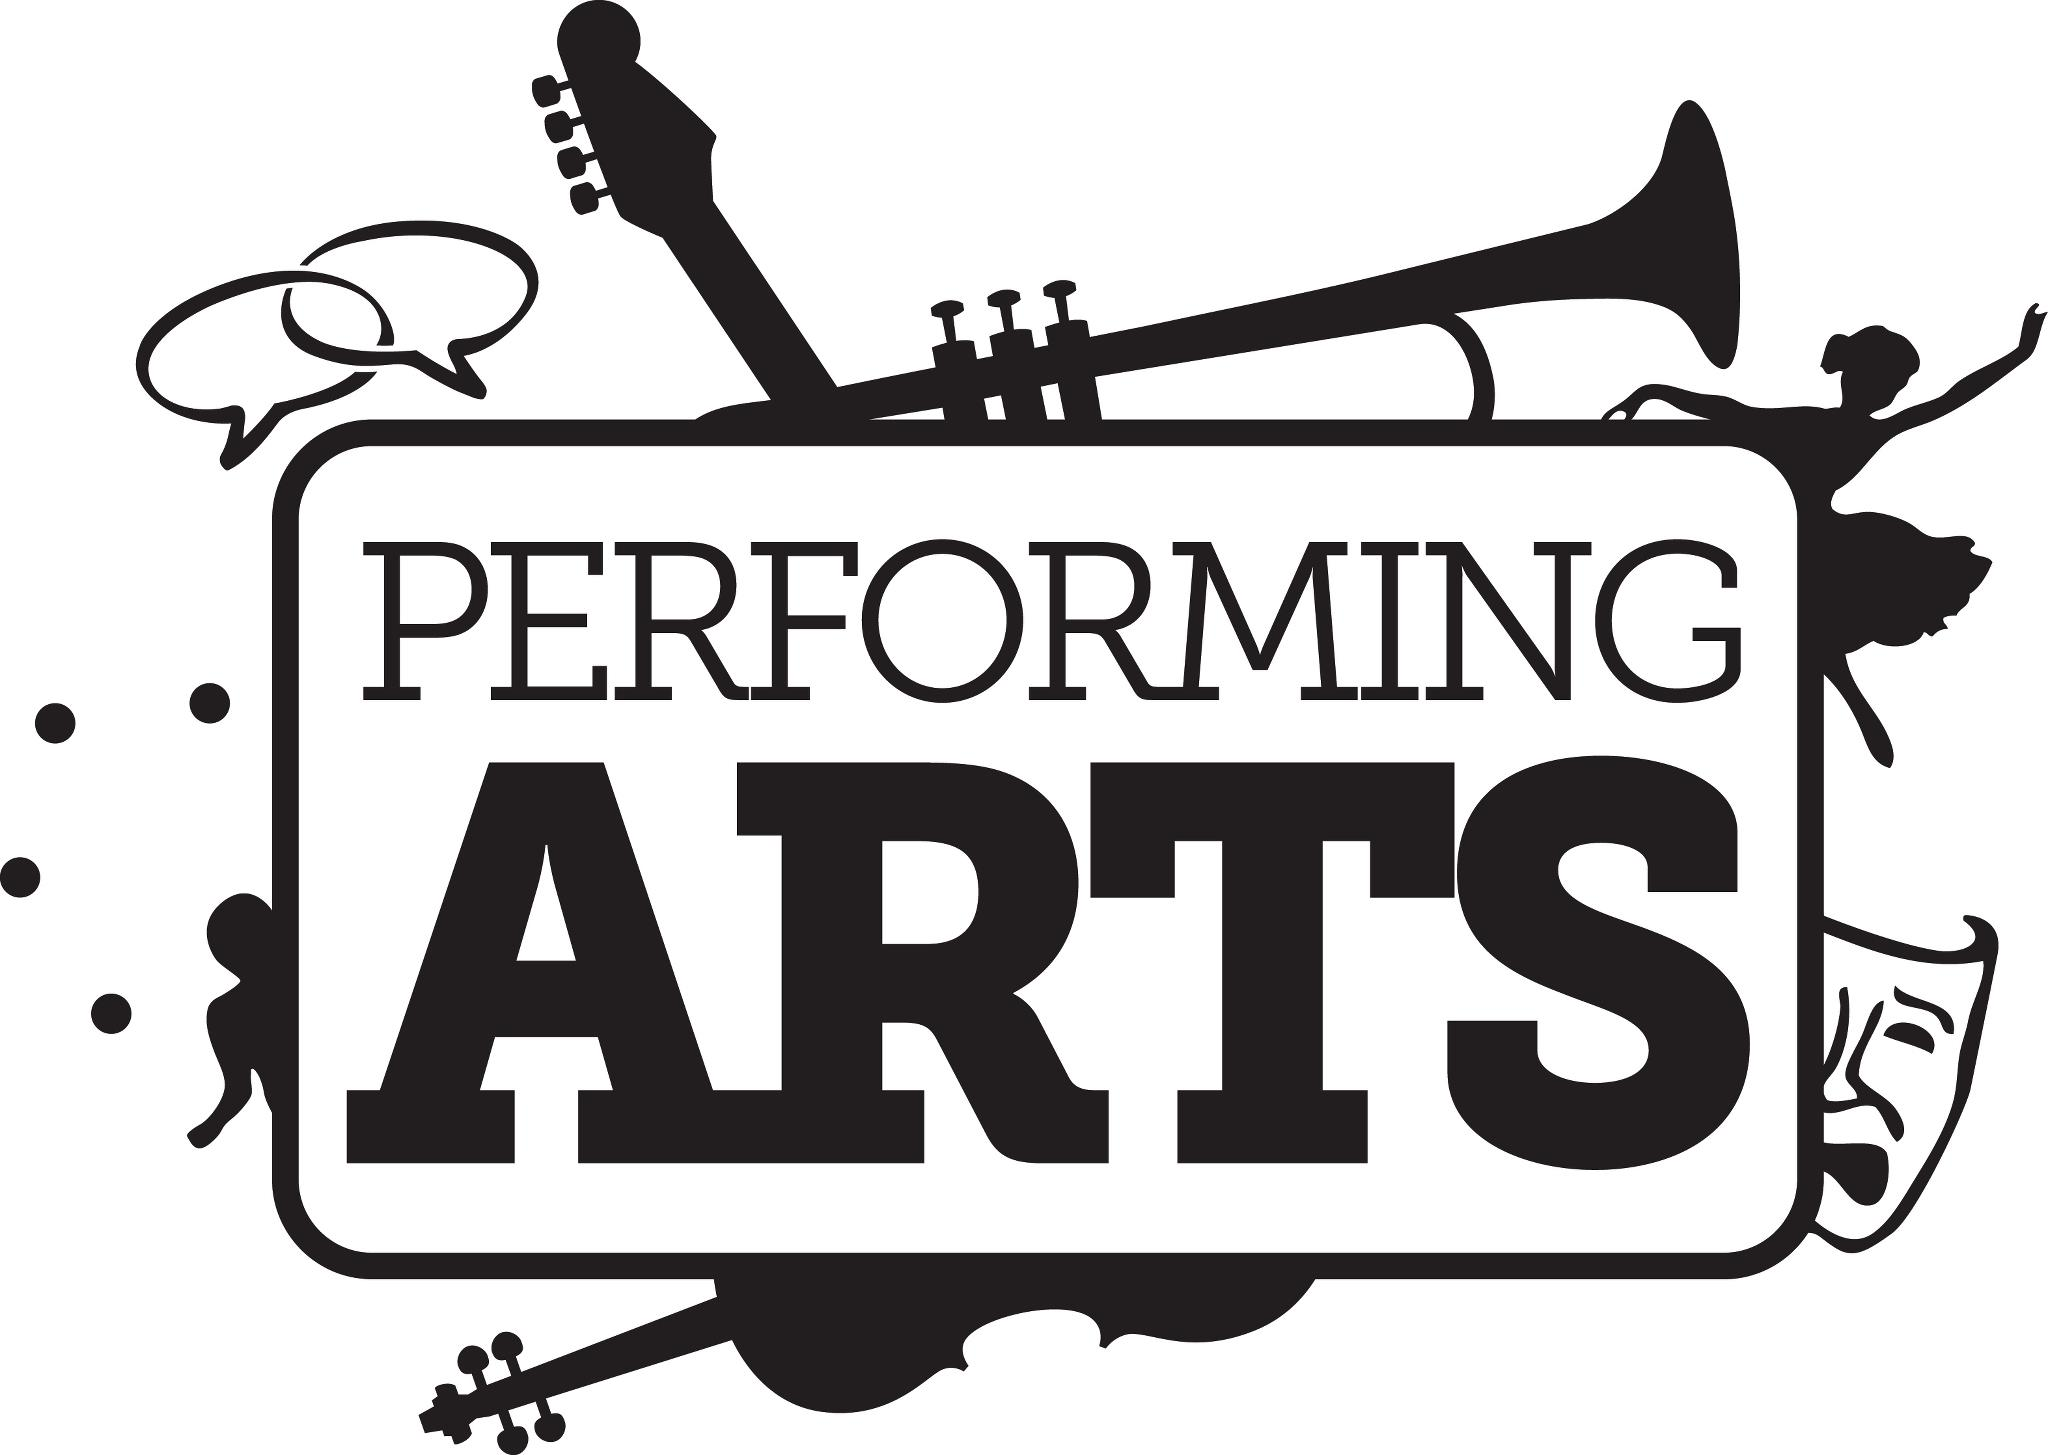 Live performances, music subjects of spring class